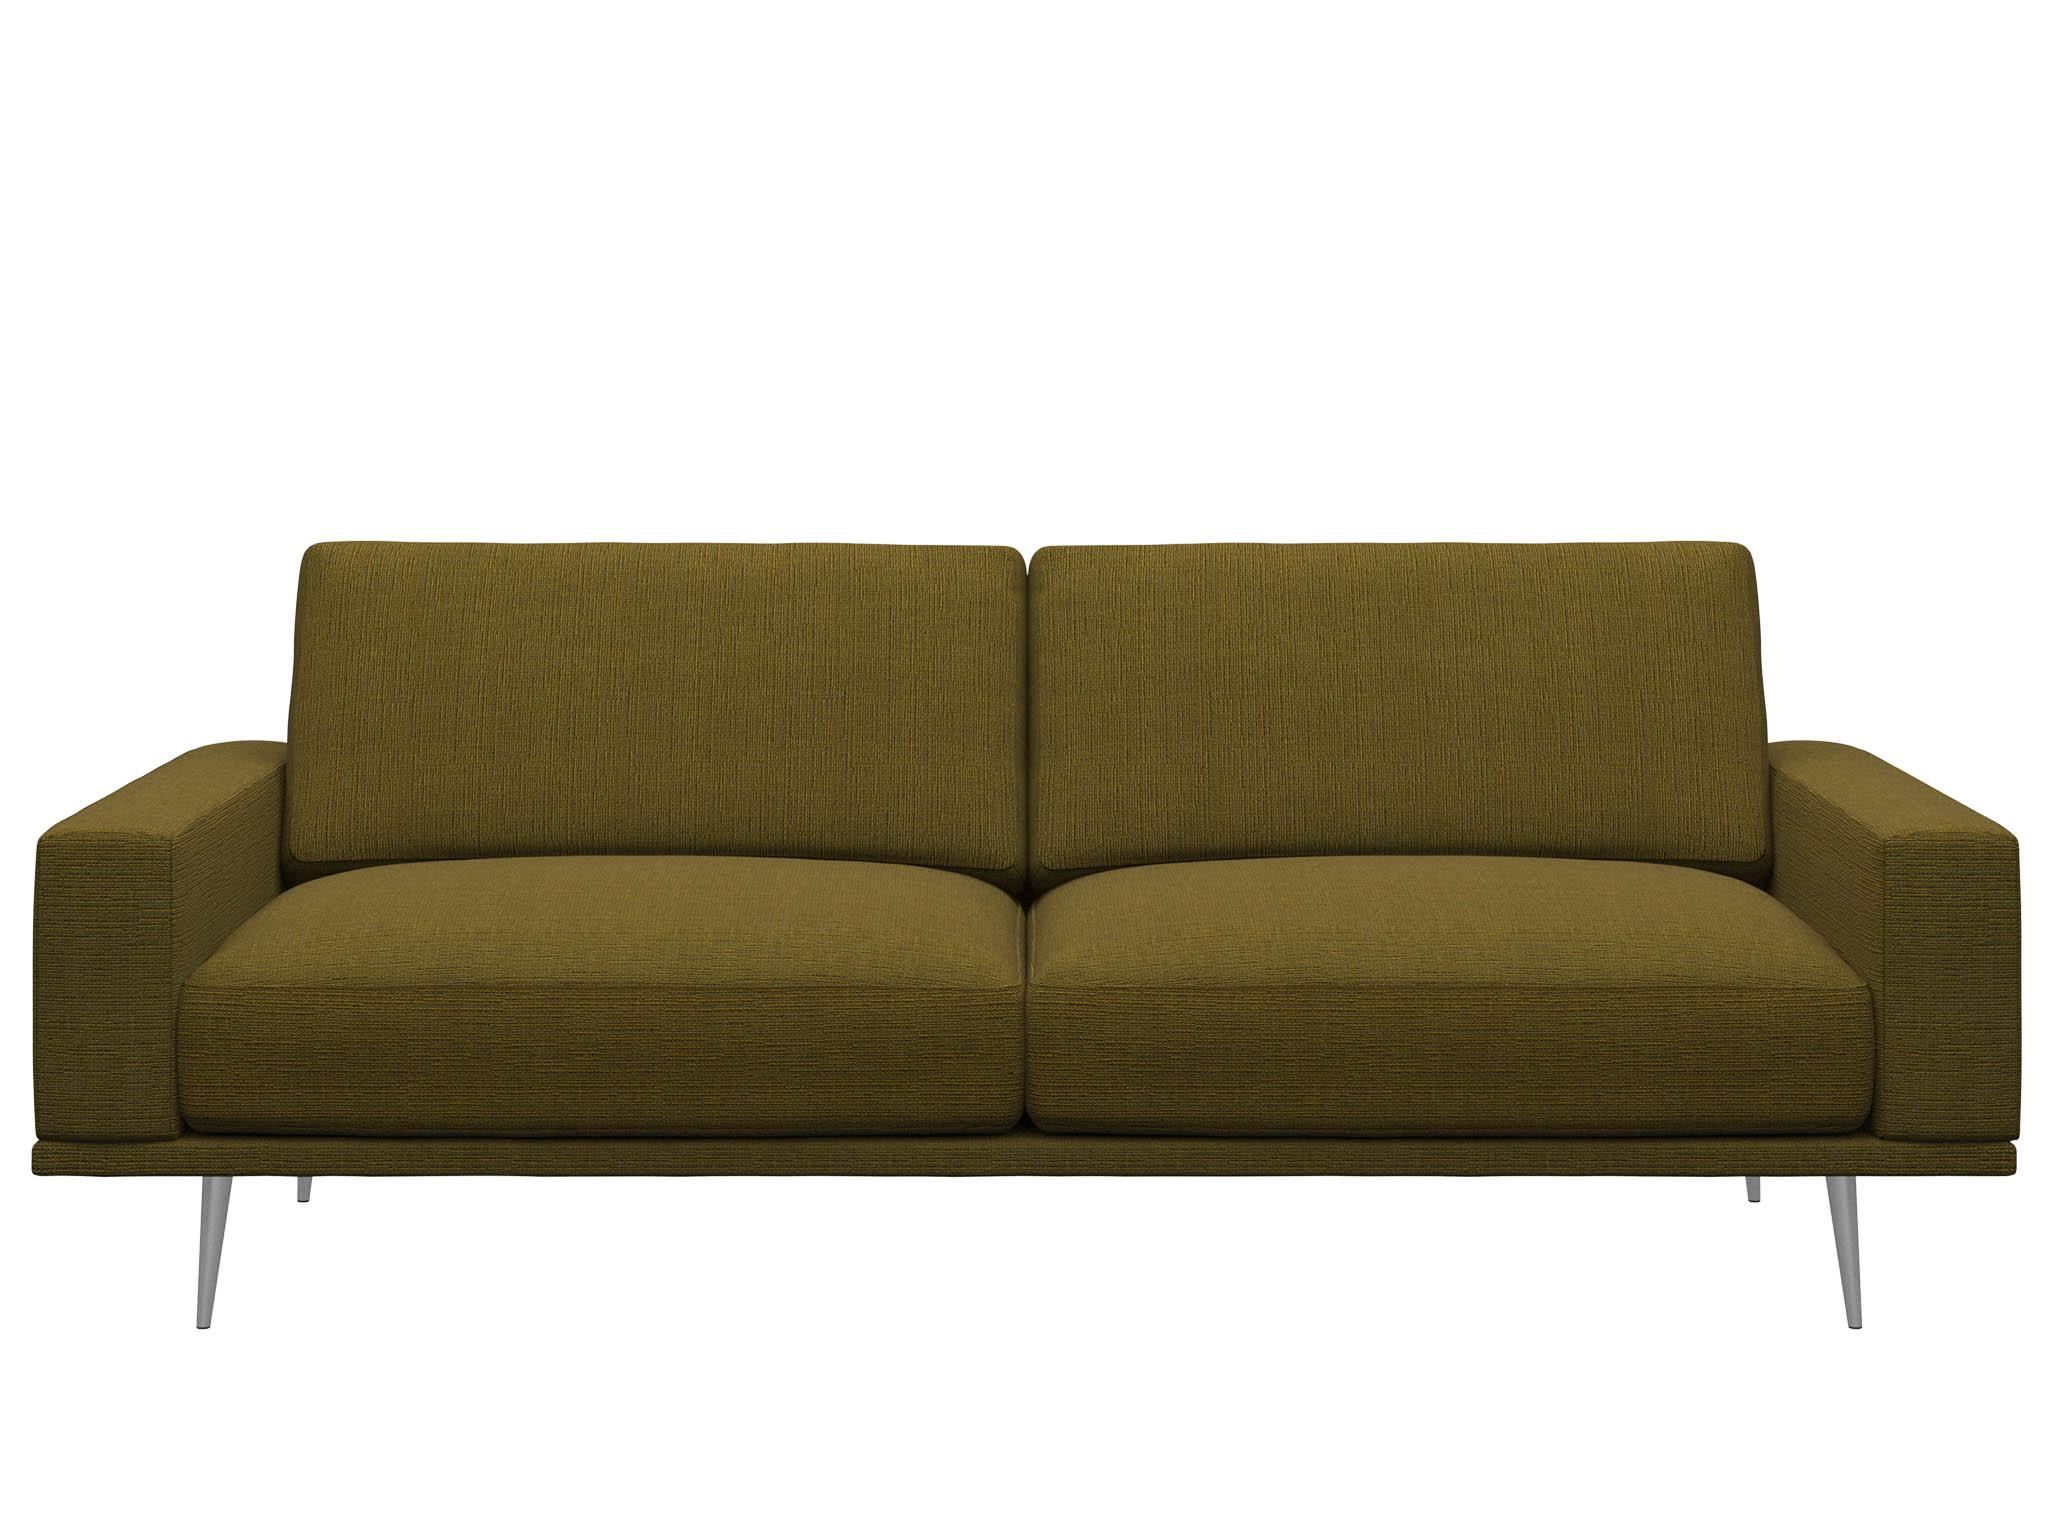 8 Best 2 Seater Sofas | The Independent Inside London Optical Sofa Chairs (Image 2 of 25)